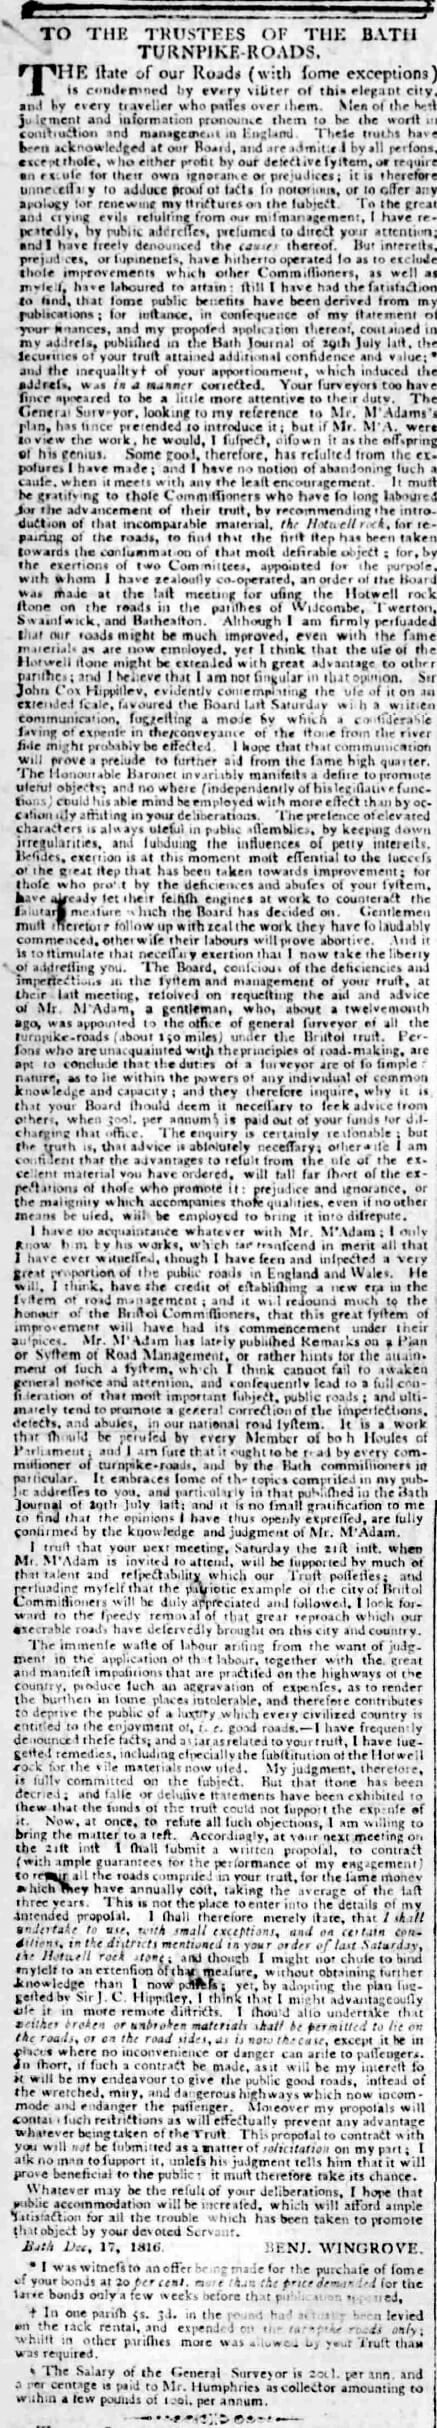 Benjamin Wingrove letter to turnpike trustees - Bath Chronicle and Weekly Gazette - Thursday 19 December 1816